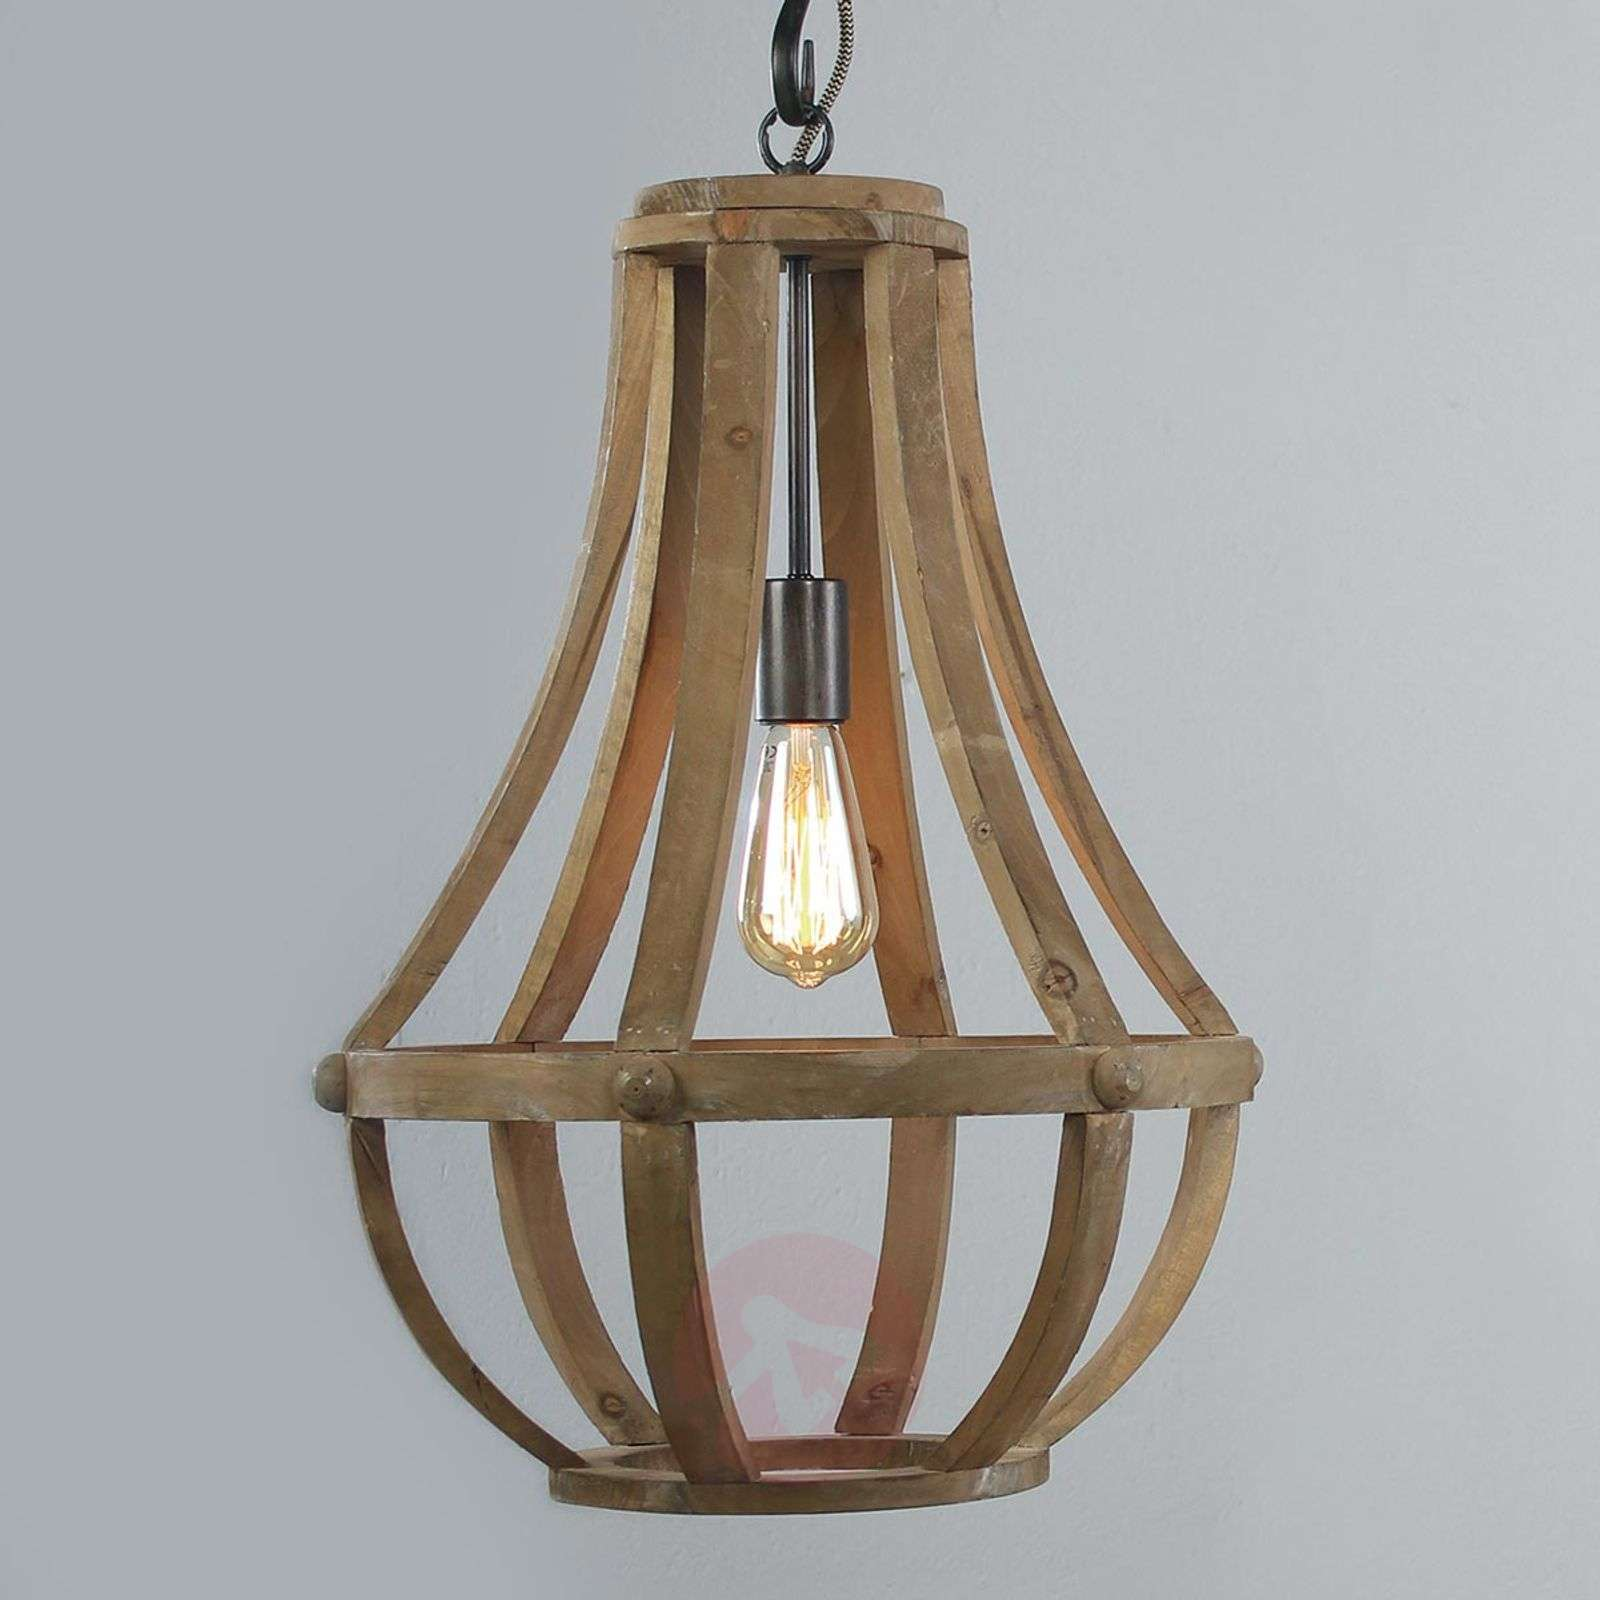 Suspension en bois Liberty Bell-8509776-01